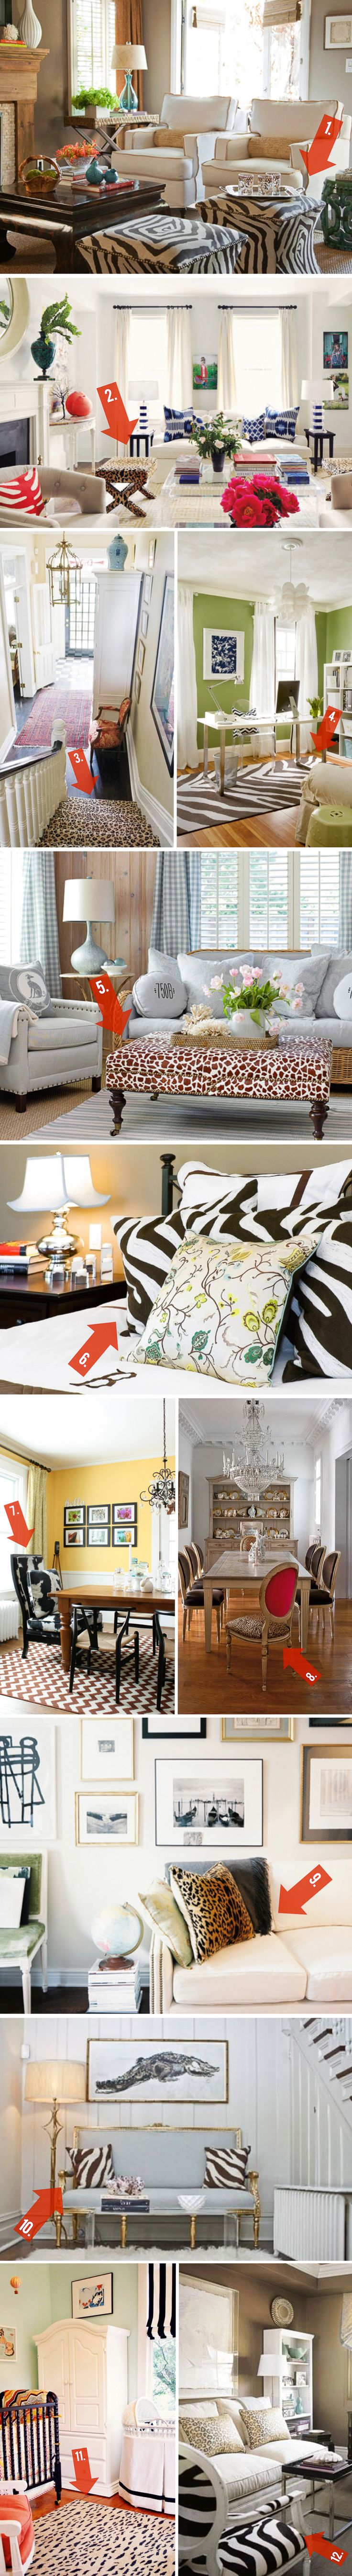 17 images about homegoods store furniture on pinterest for The arrangement furniture store